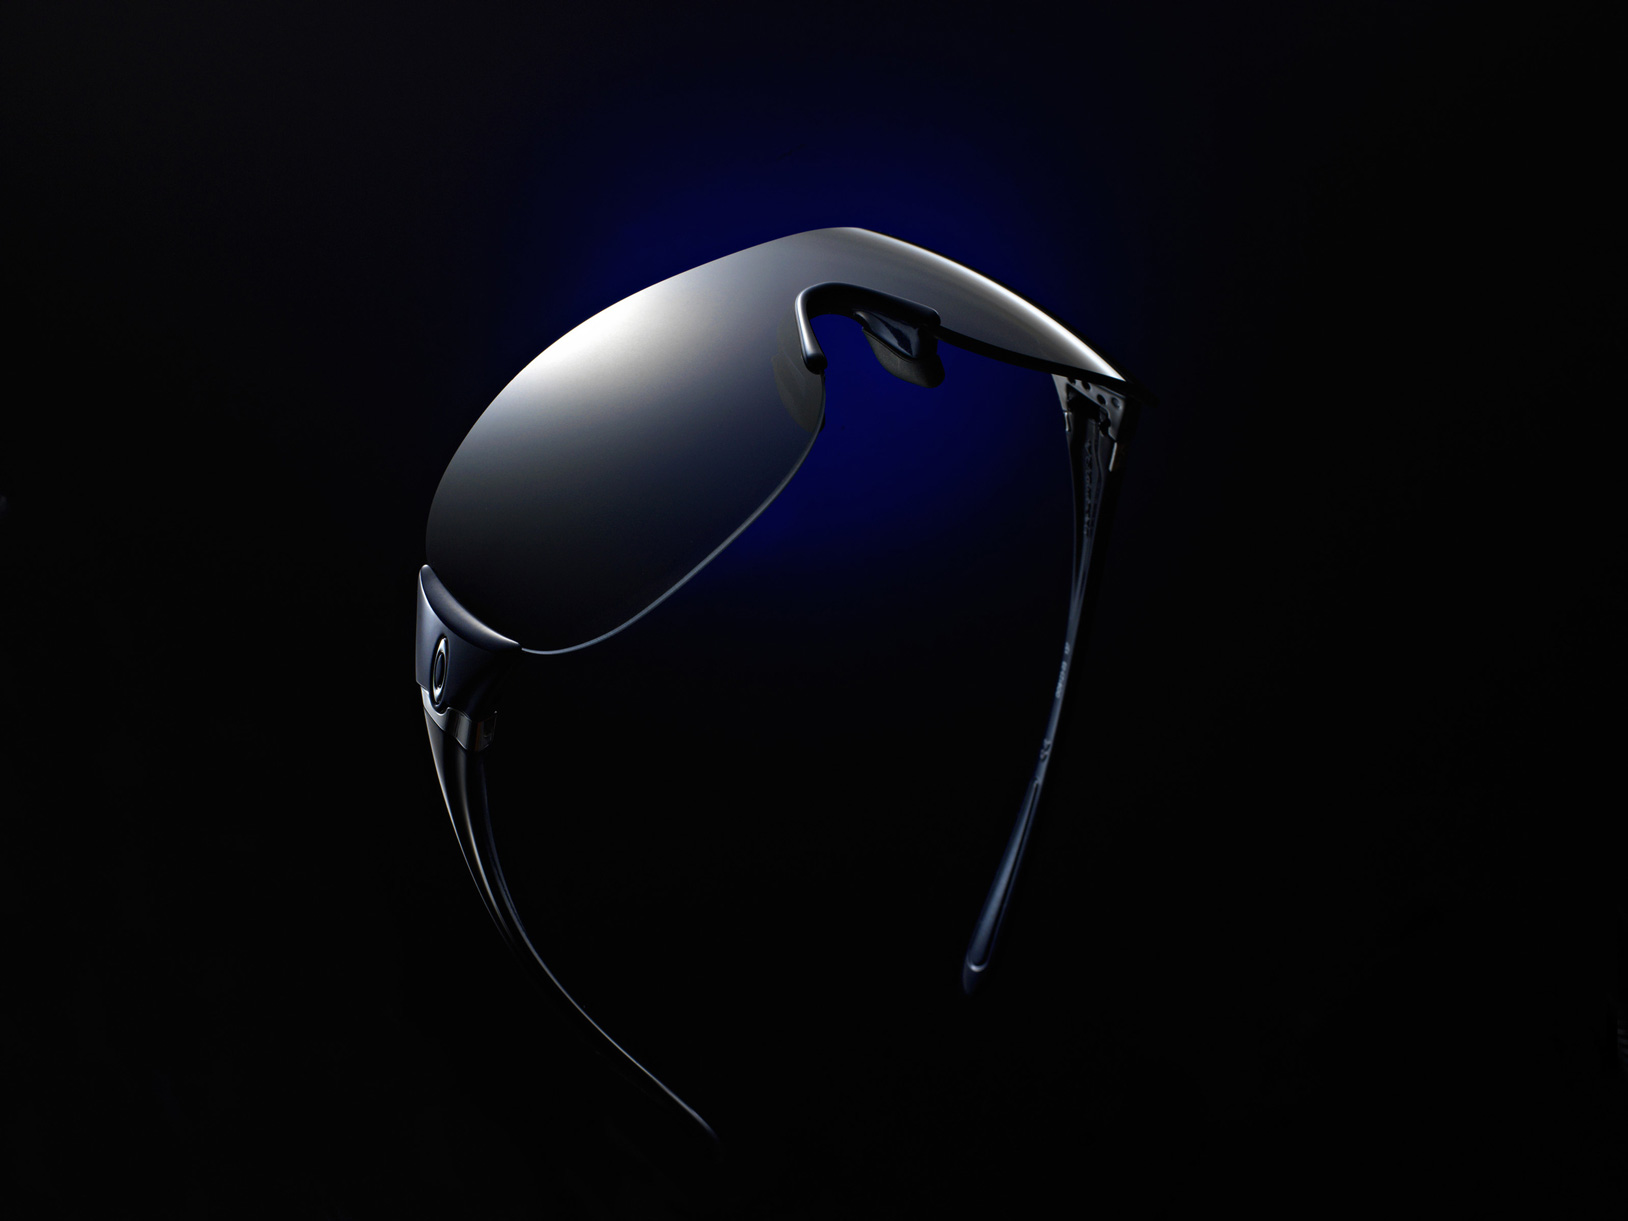 Sunglasses with dramatic lighting on black background